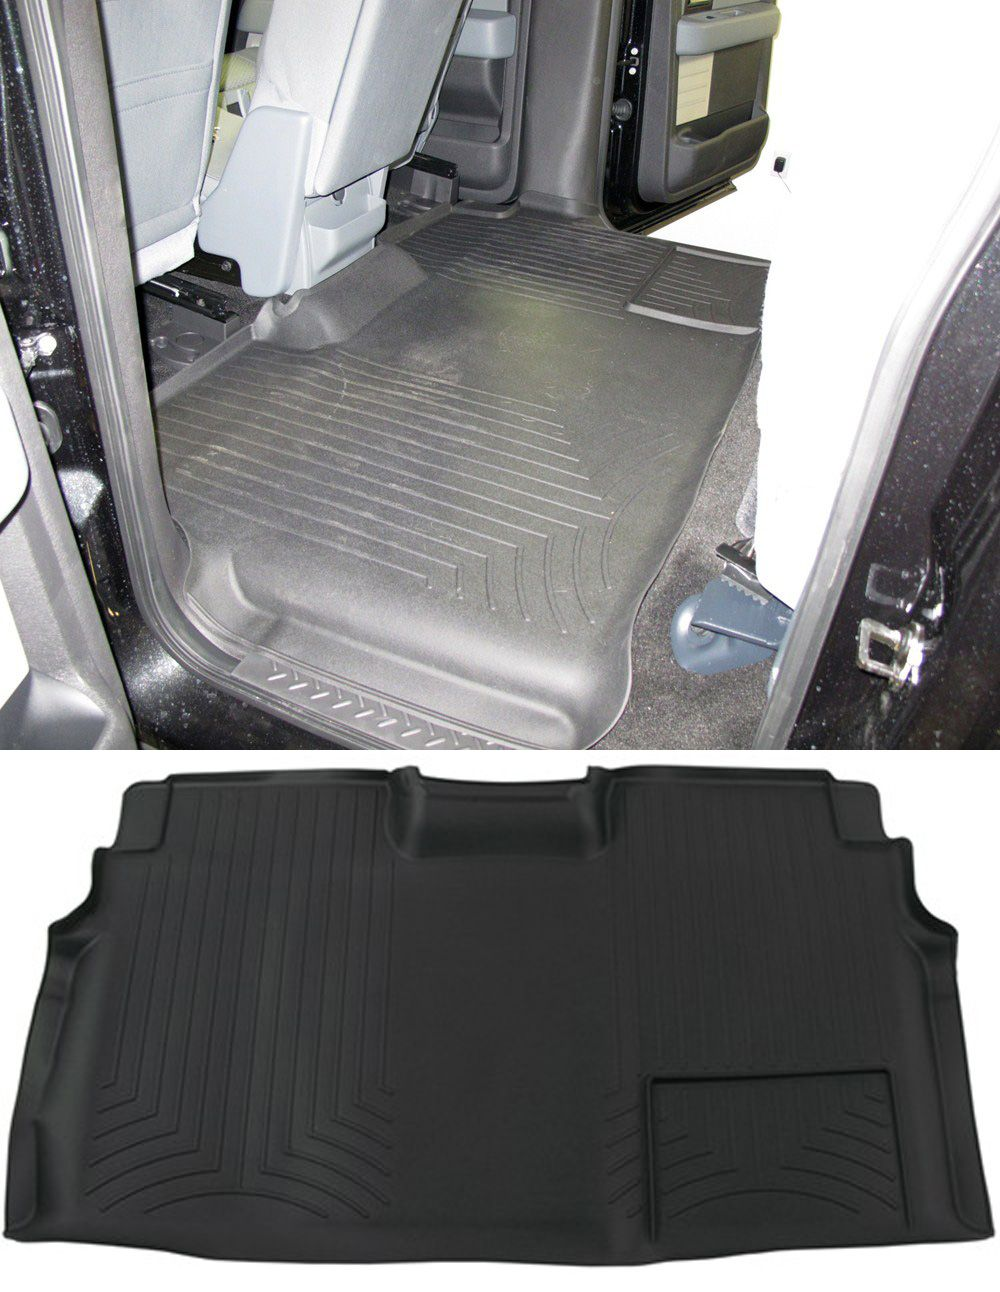 Weathertech floor mats cleaning - Keep The Floors Of Your Ford F 150 Clean With This Functional Custom Floor